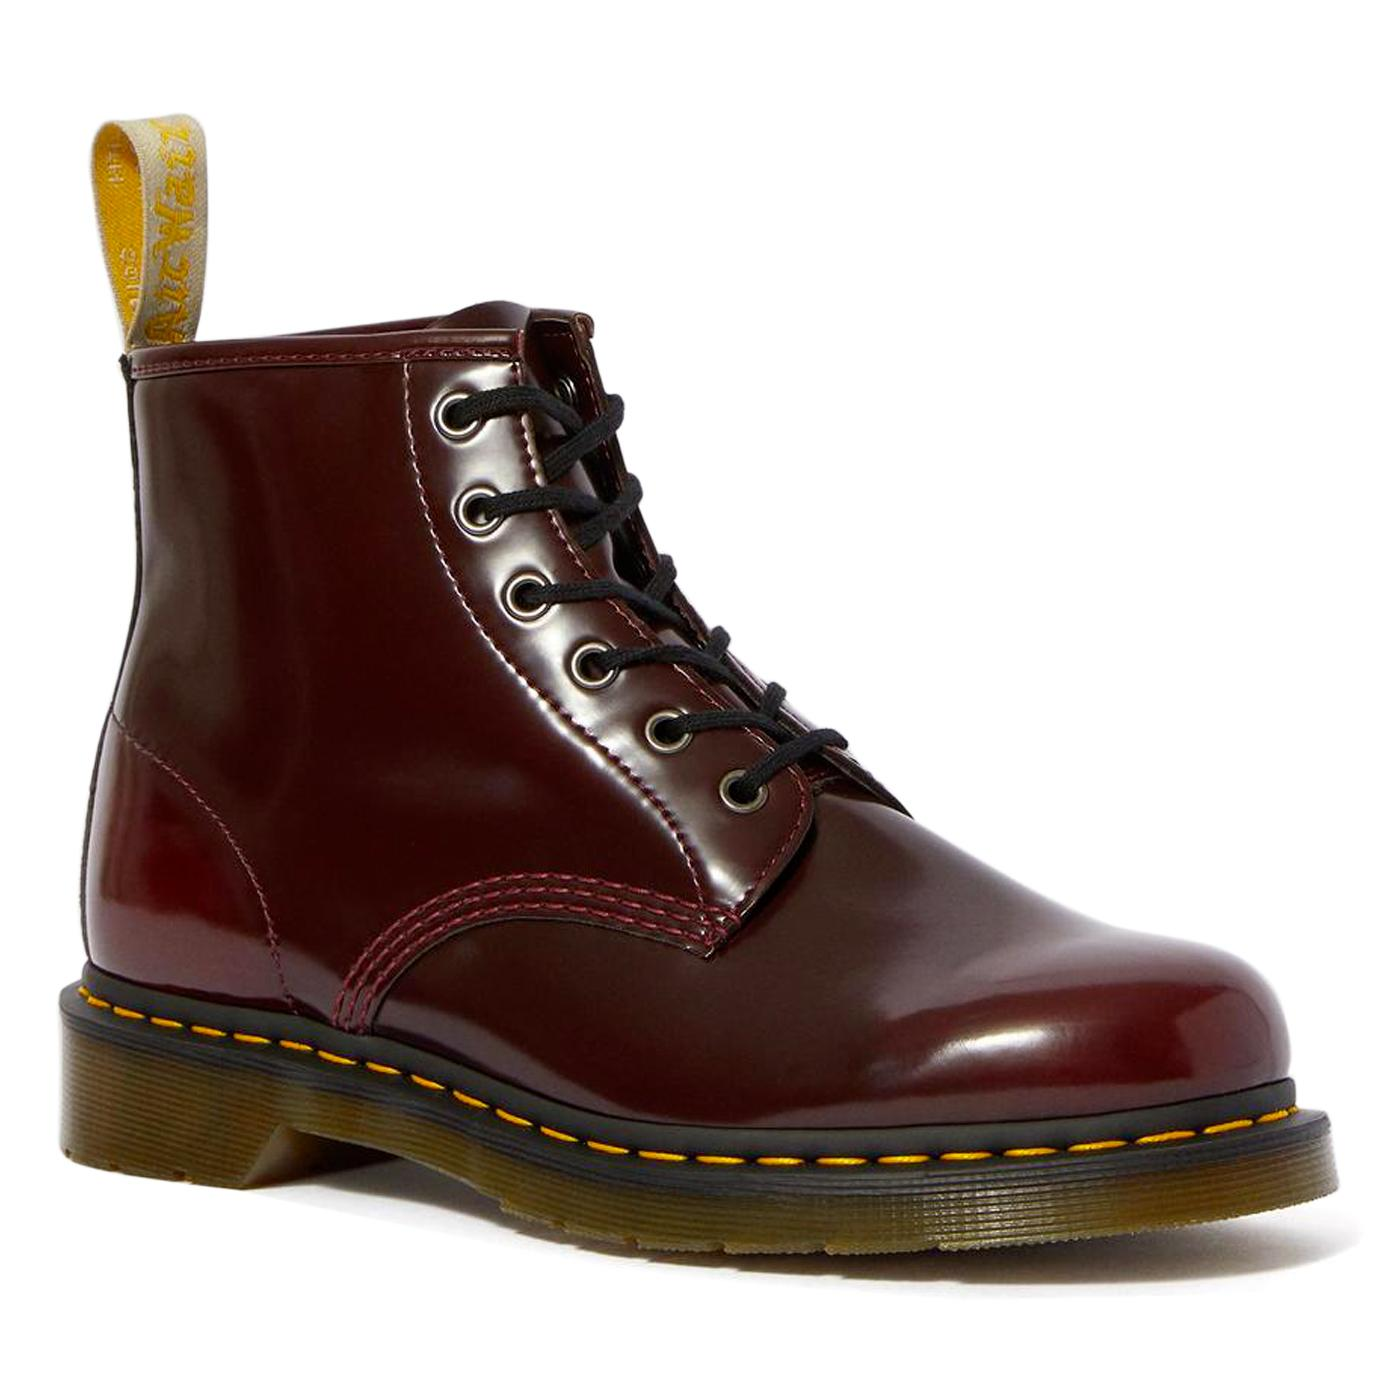 Vegan 101 DR MARTENS Men's Cherry Red Boots